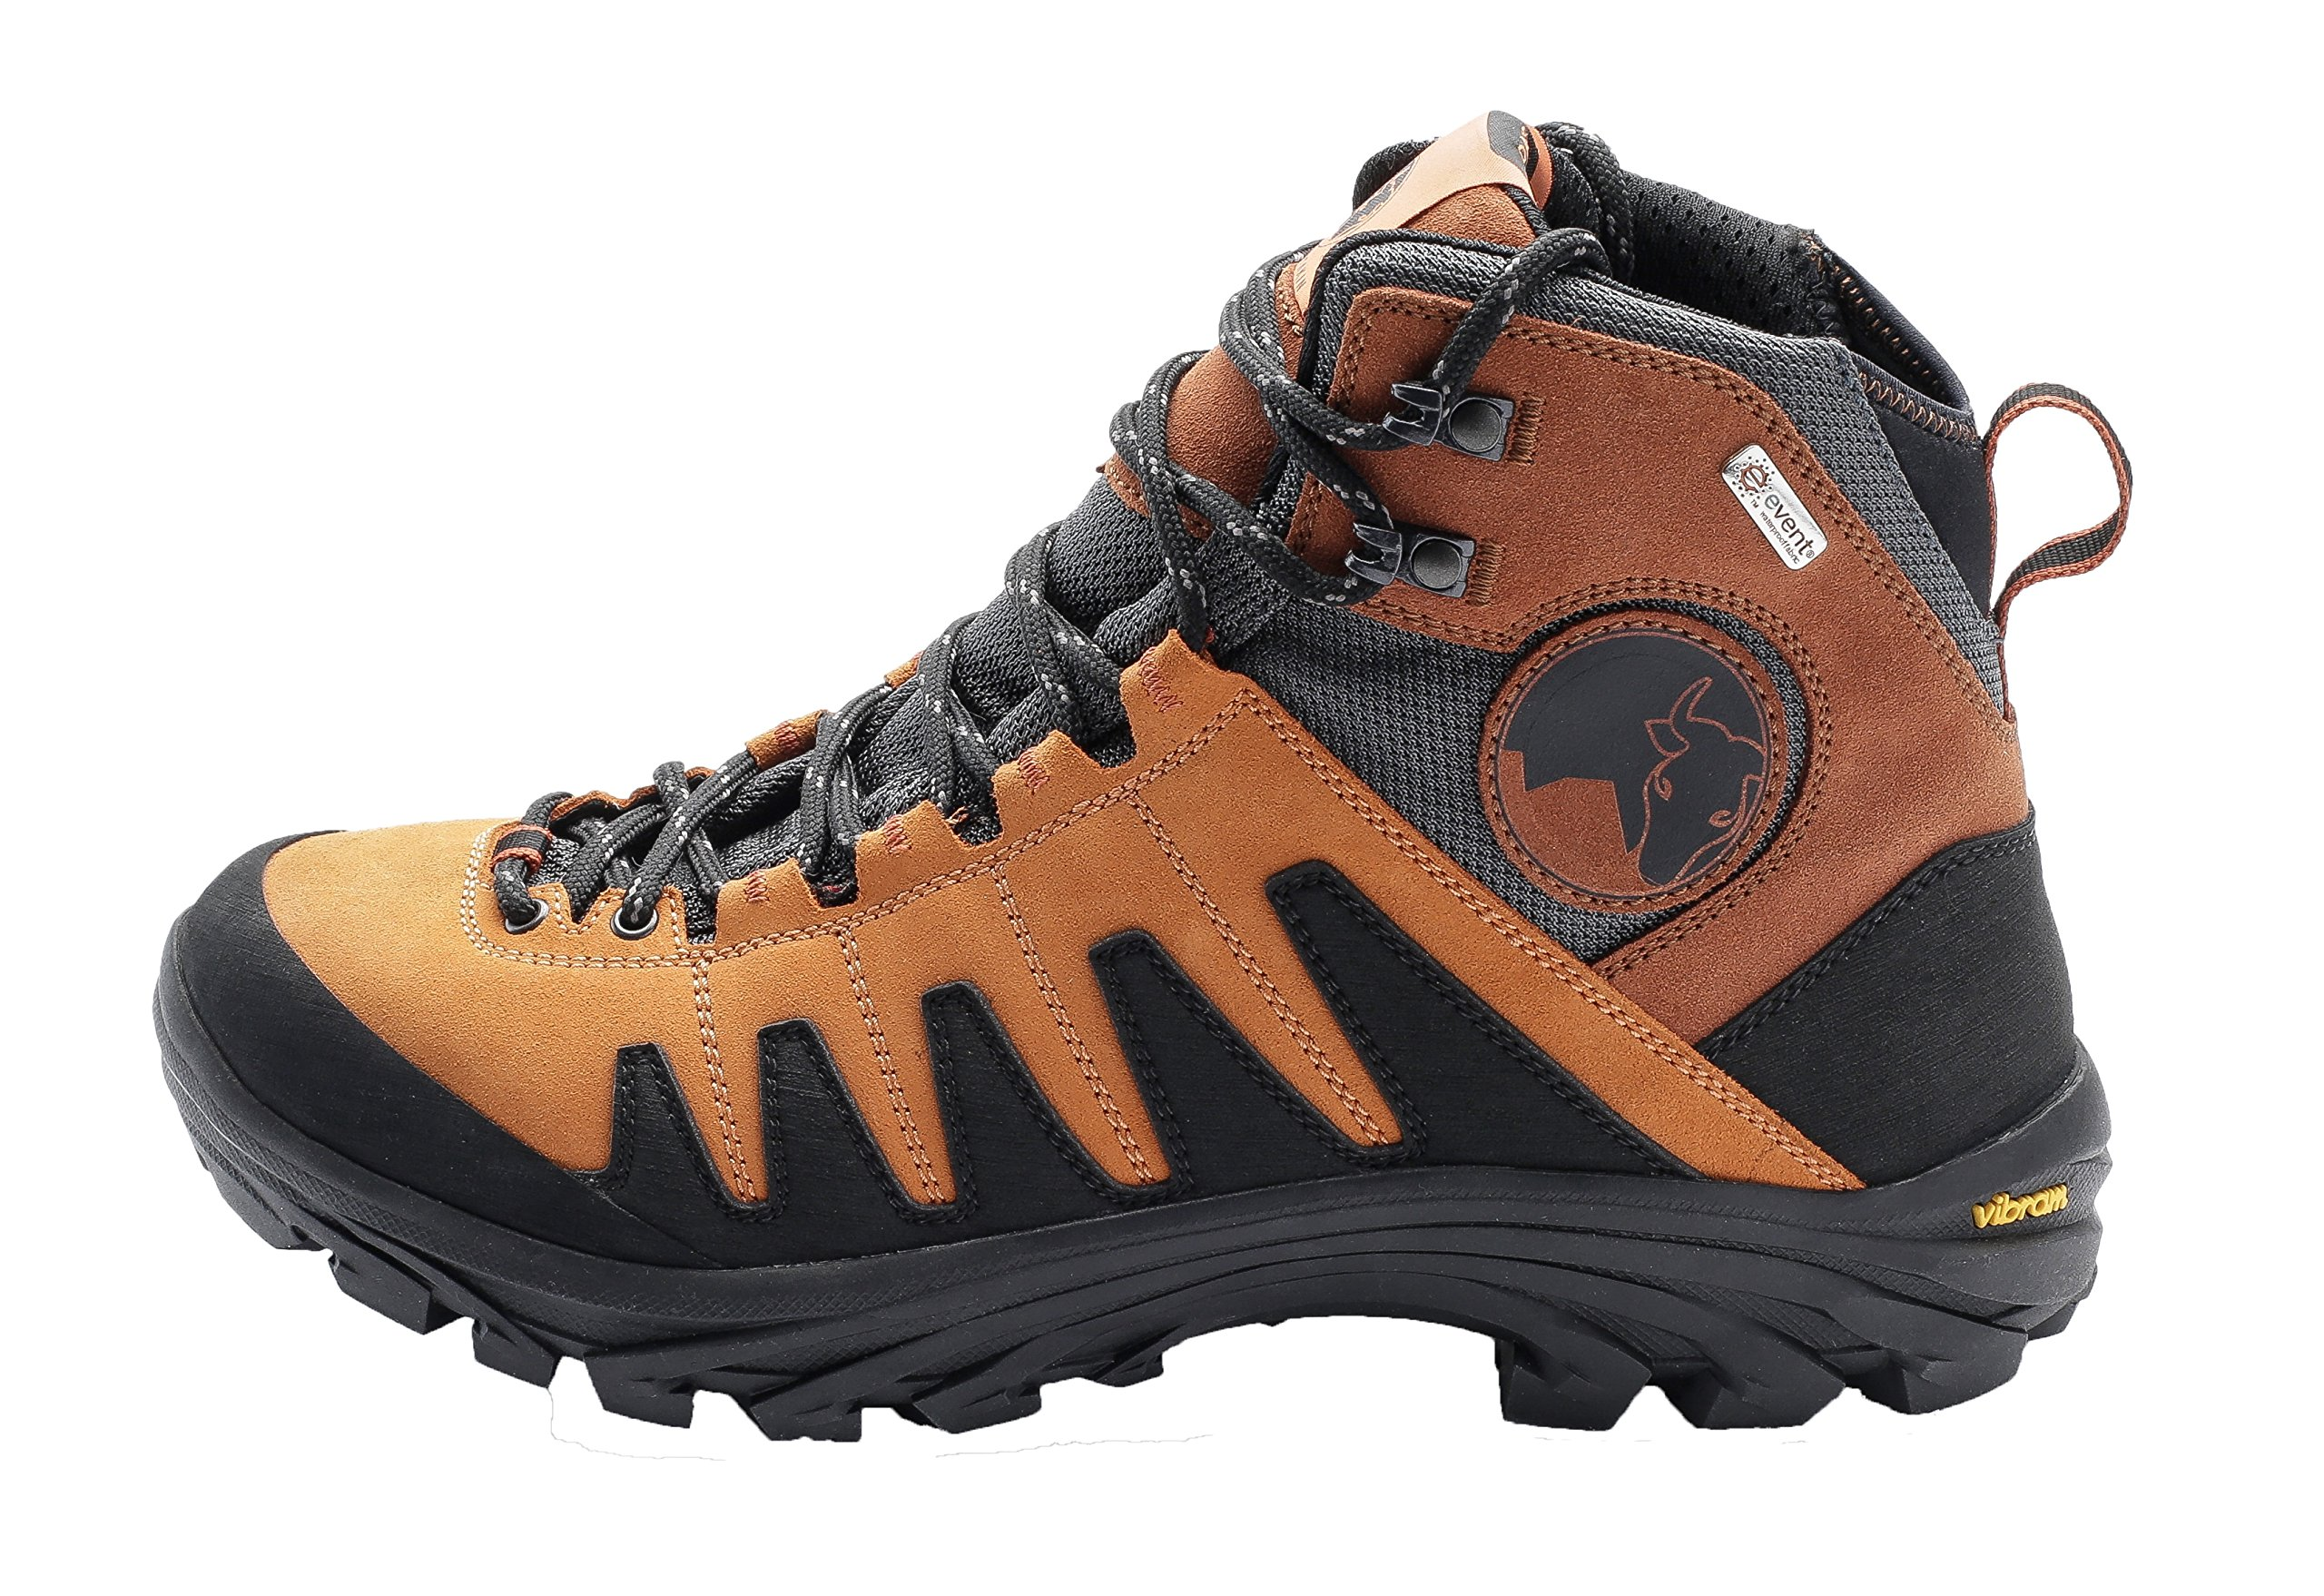 Mishmi Takin Kameng Mid Event Waterproof Hiking Boot (EU 41/US Women 9.5/US Men 8.5, Sunset Orange)